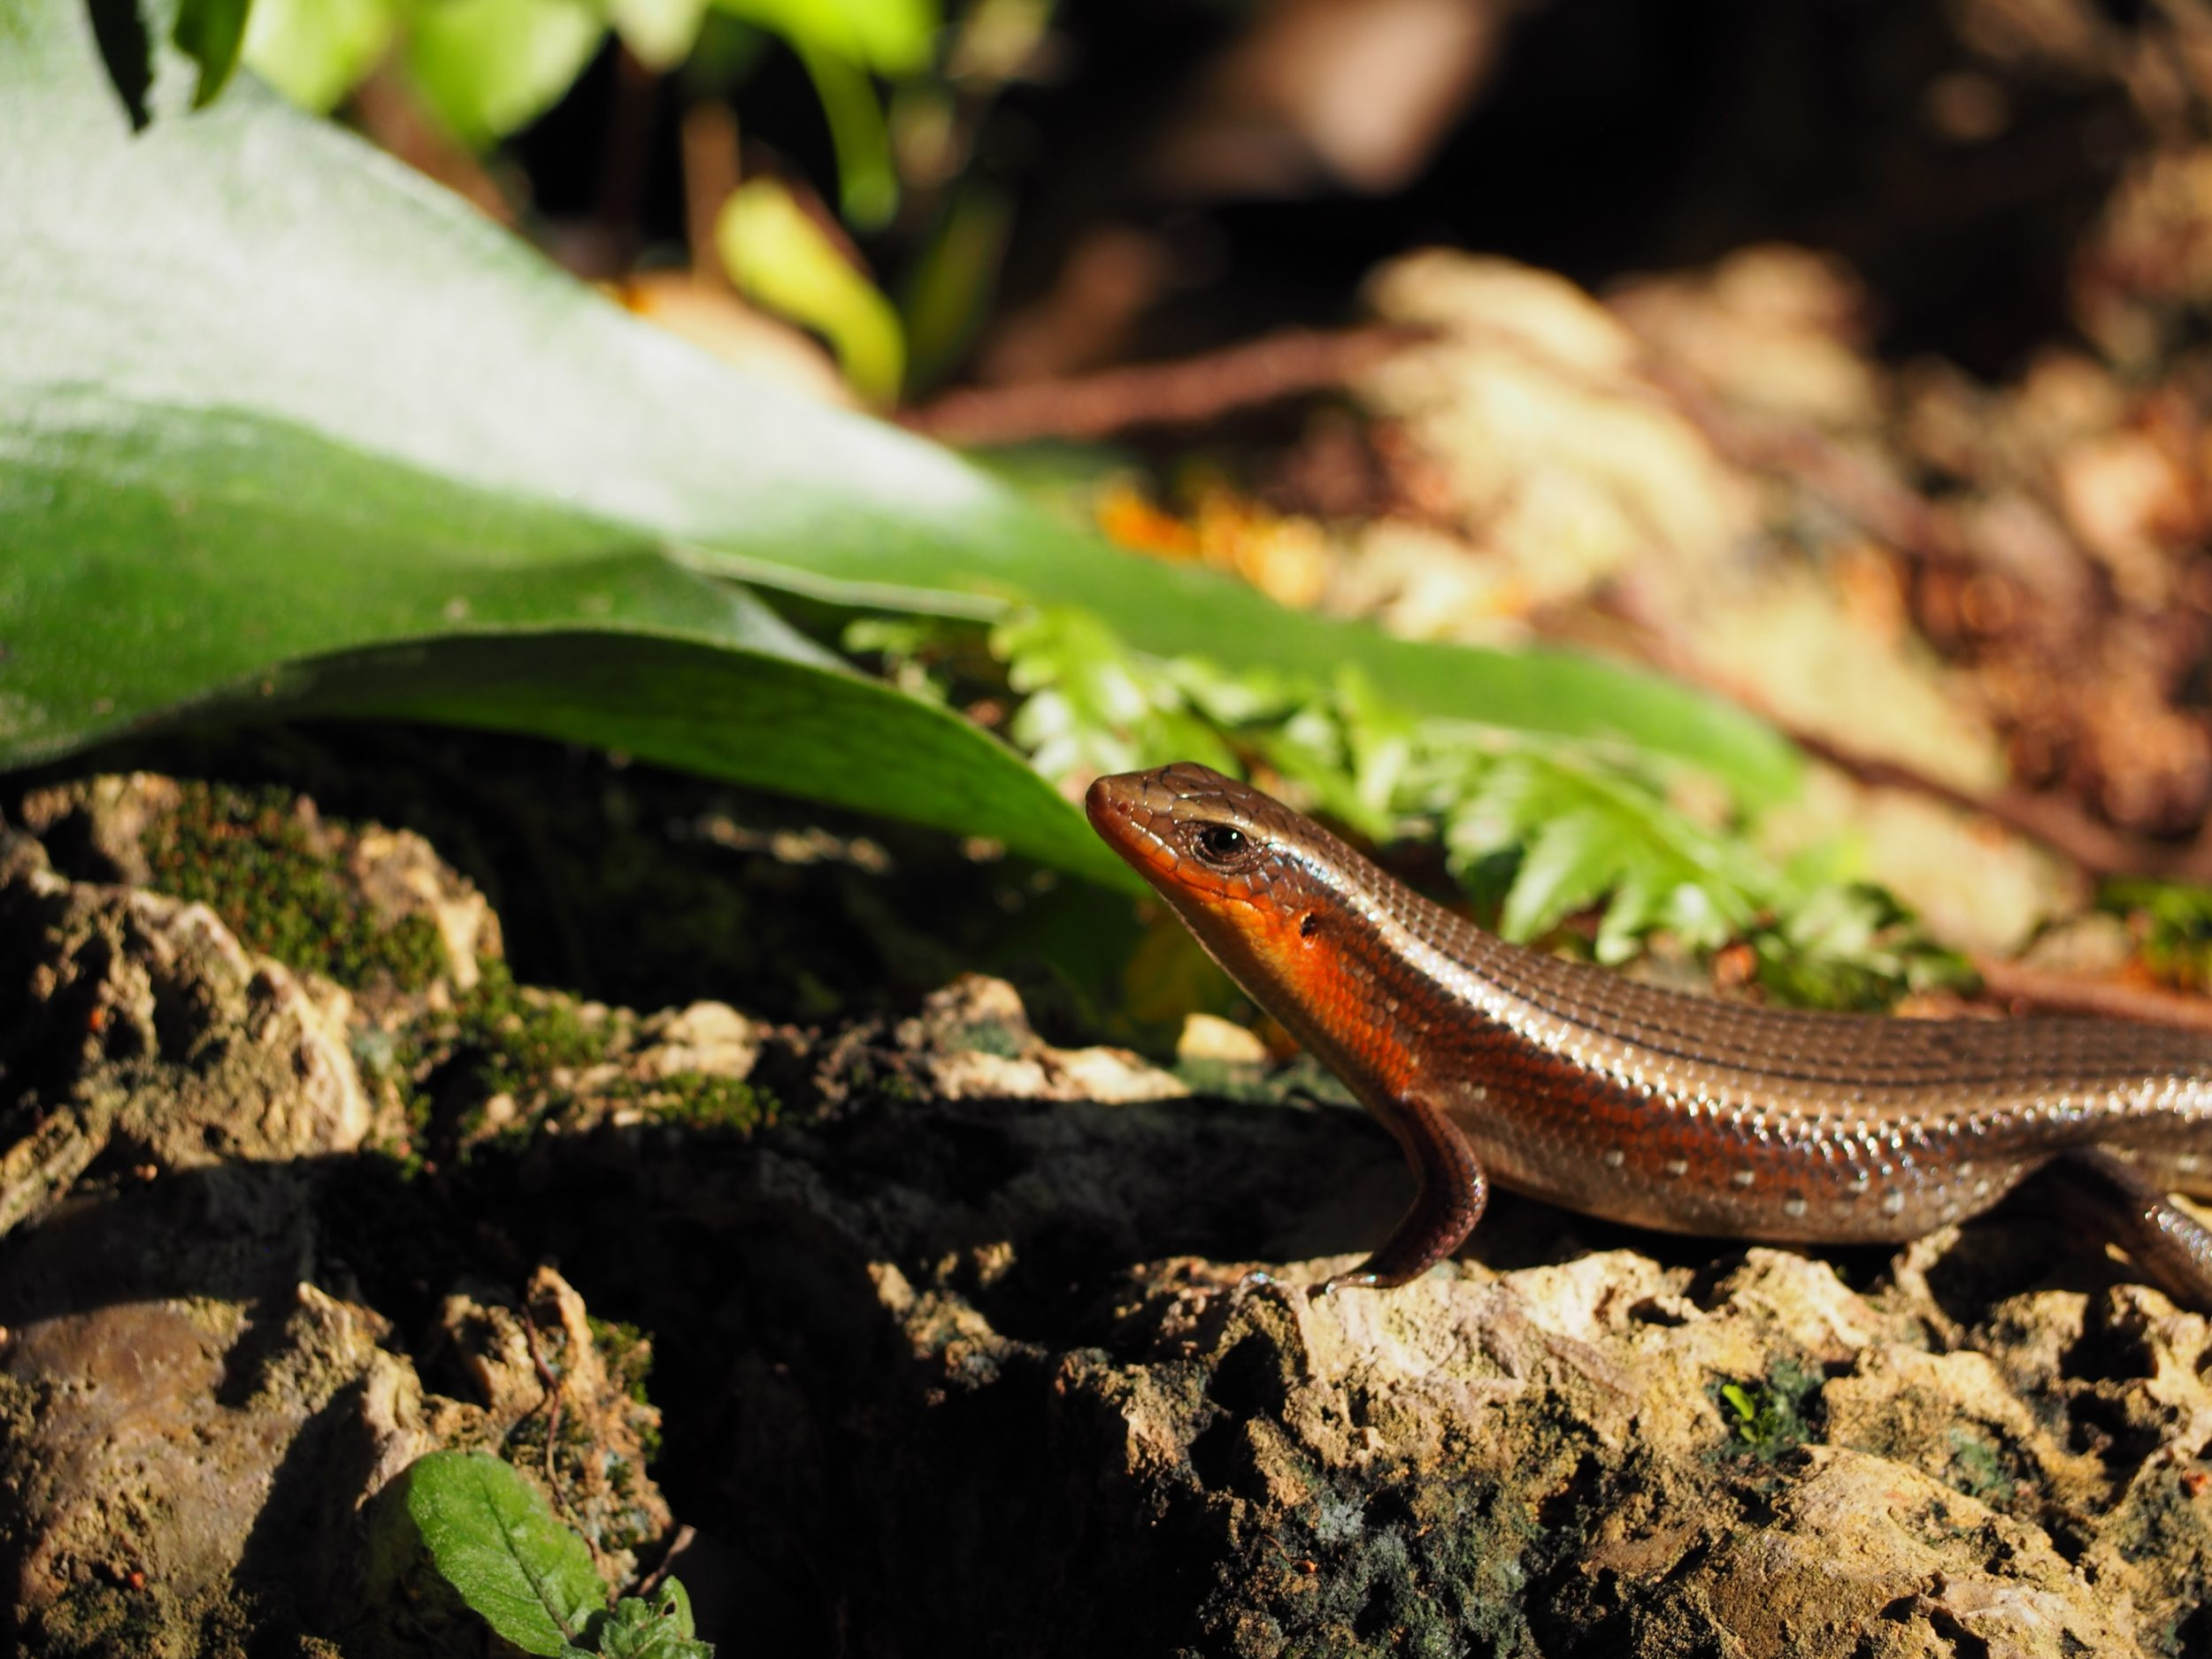 Geckos are ubiquitous in South East Asia